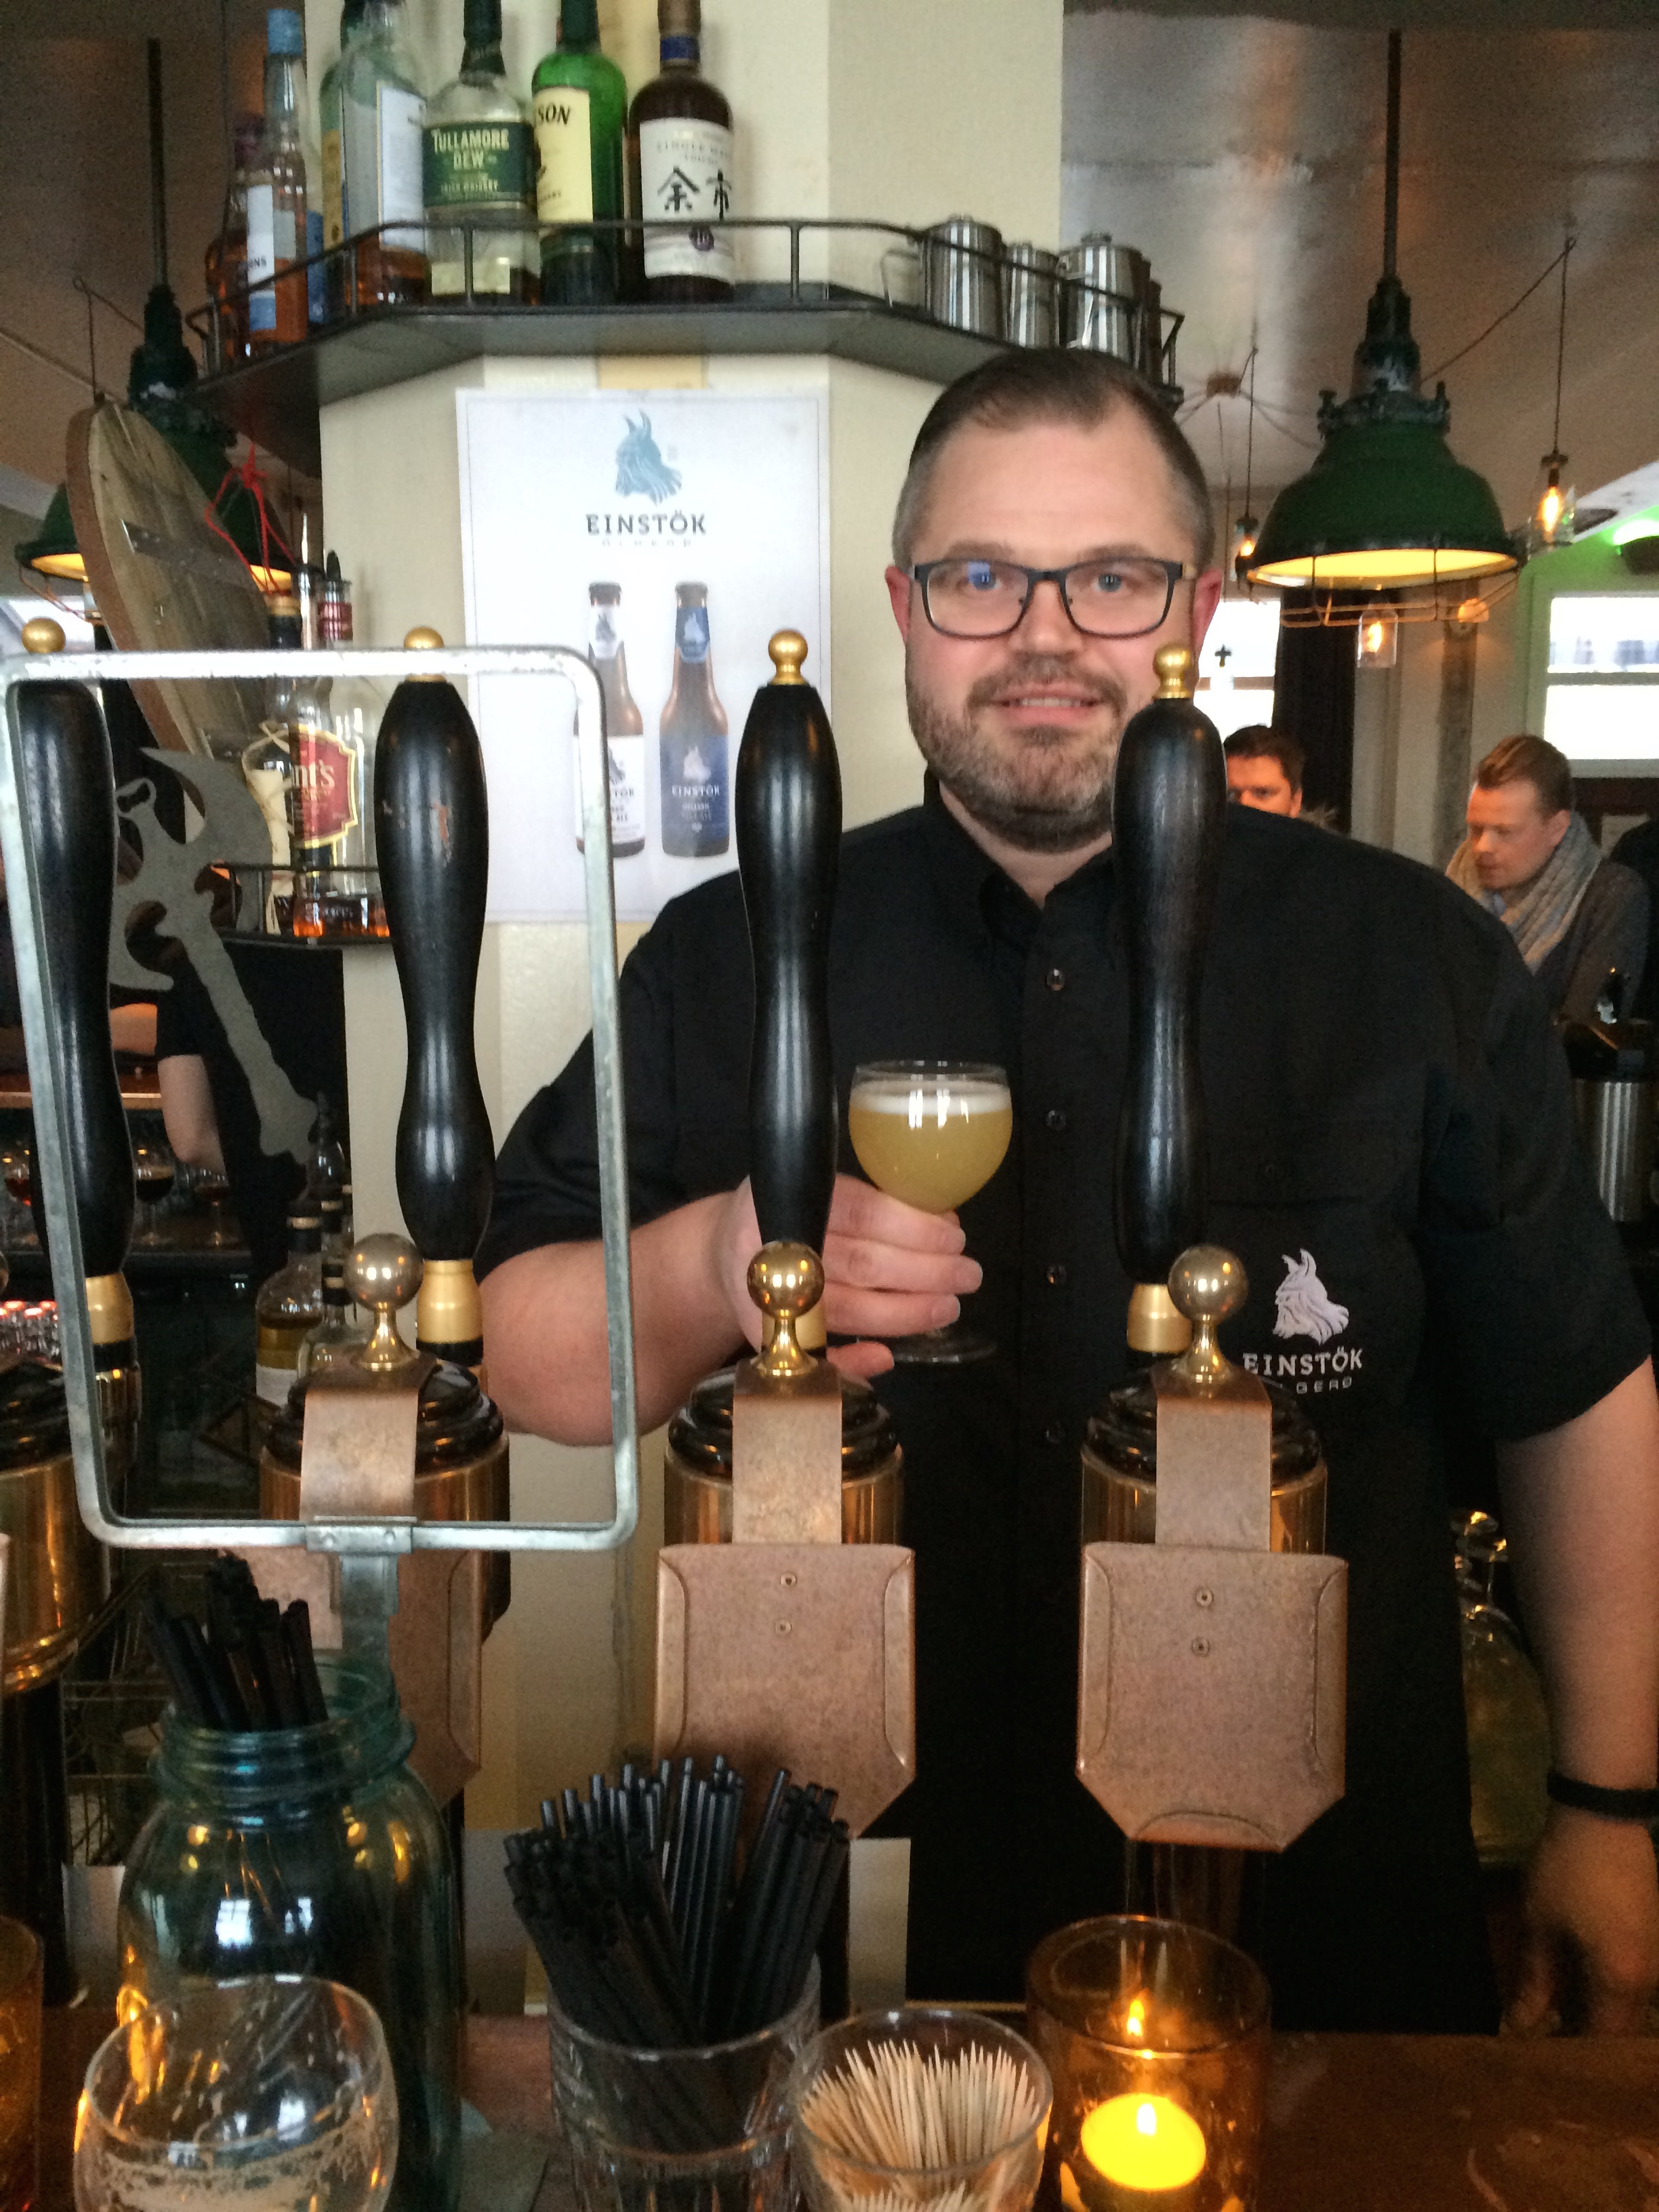 Einstok Brewery serving Icelandic White Ale at Icelandic Beer Fest